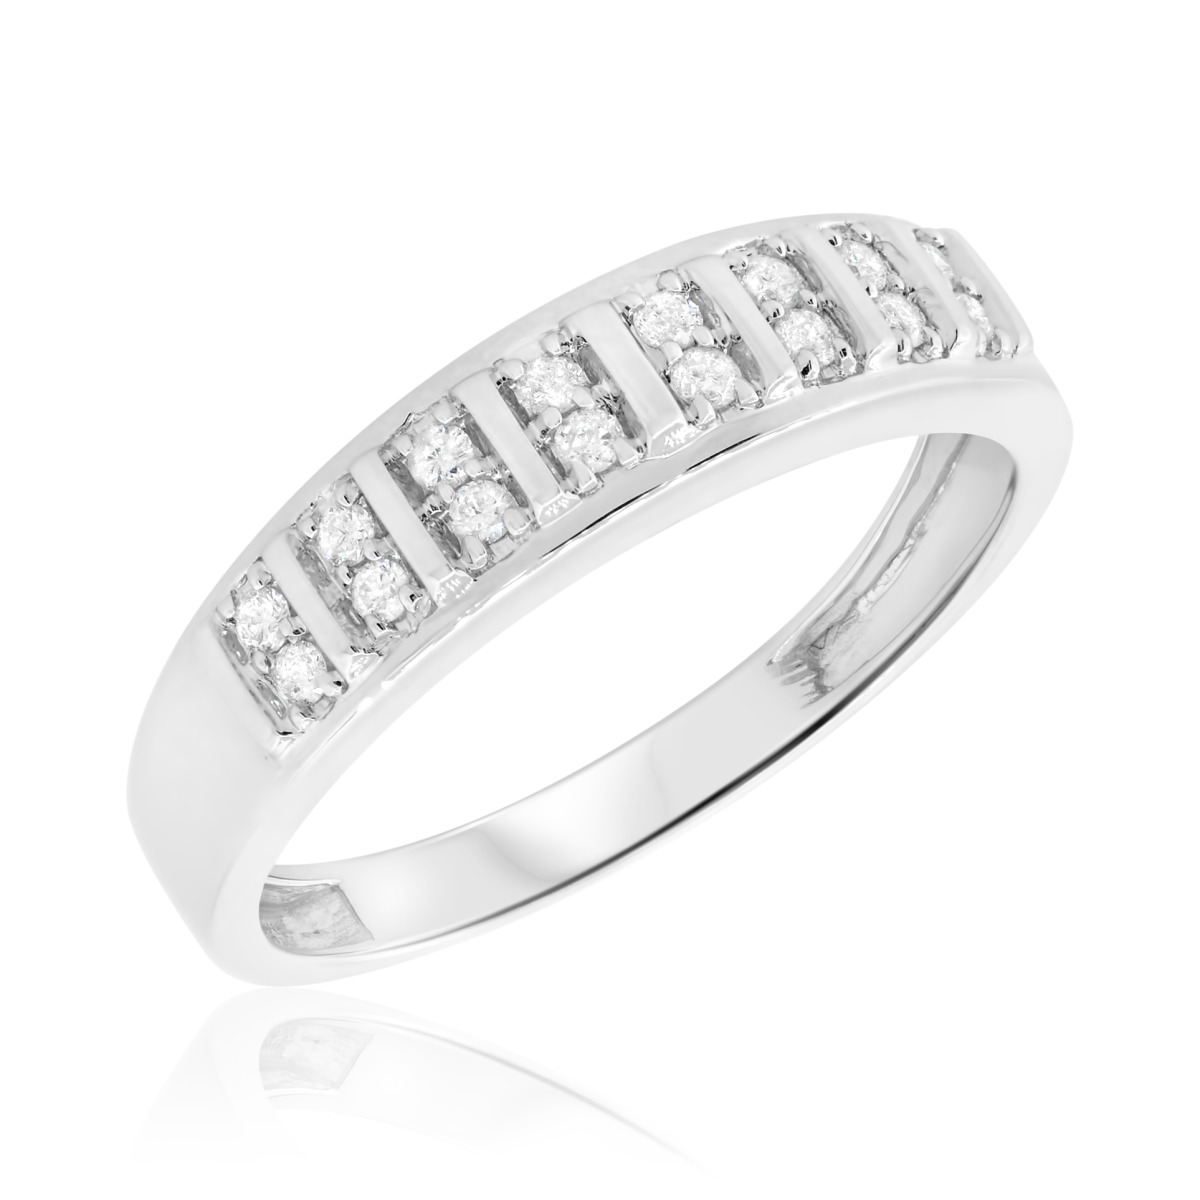 mens wedding band - Mens Wedding Ring With Diamonds